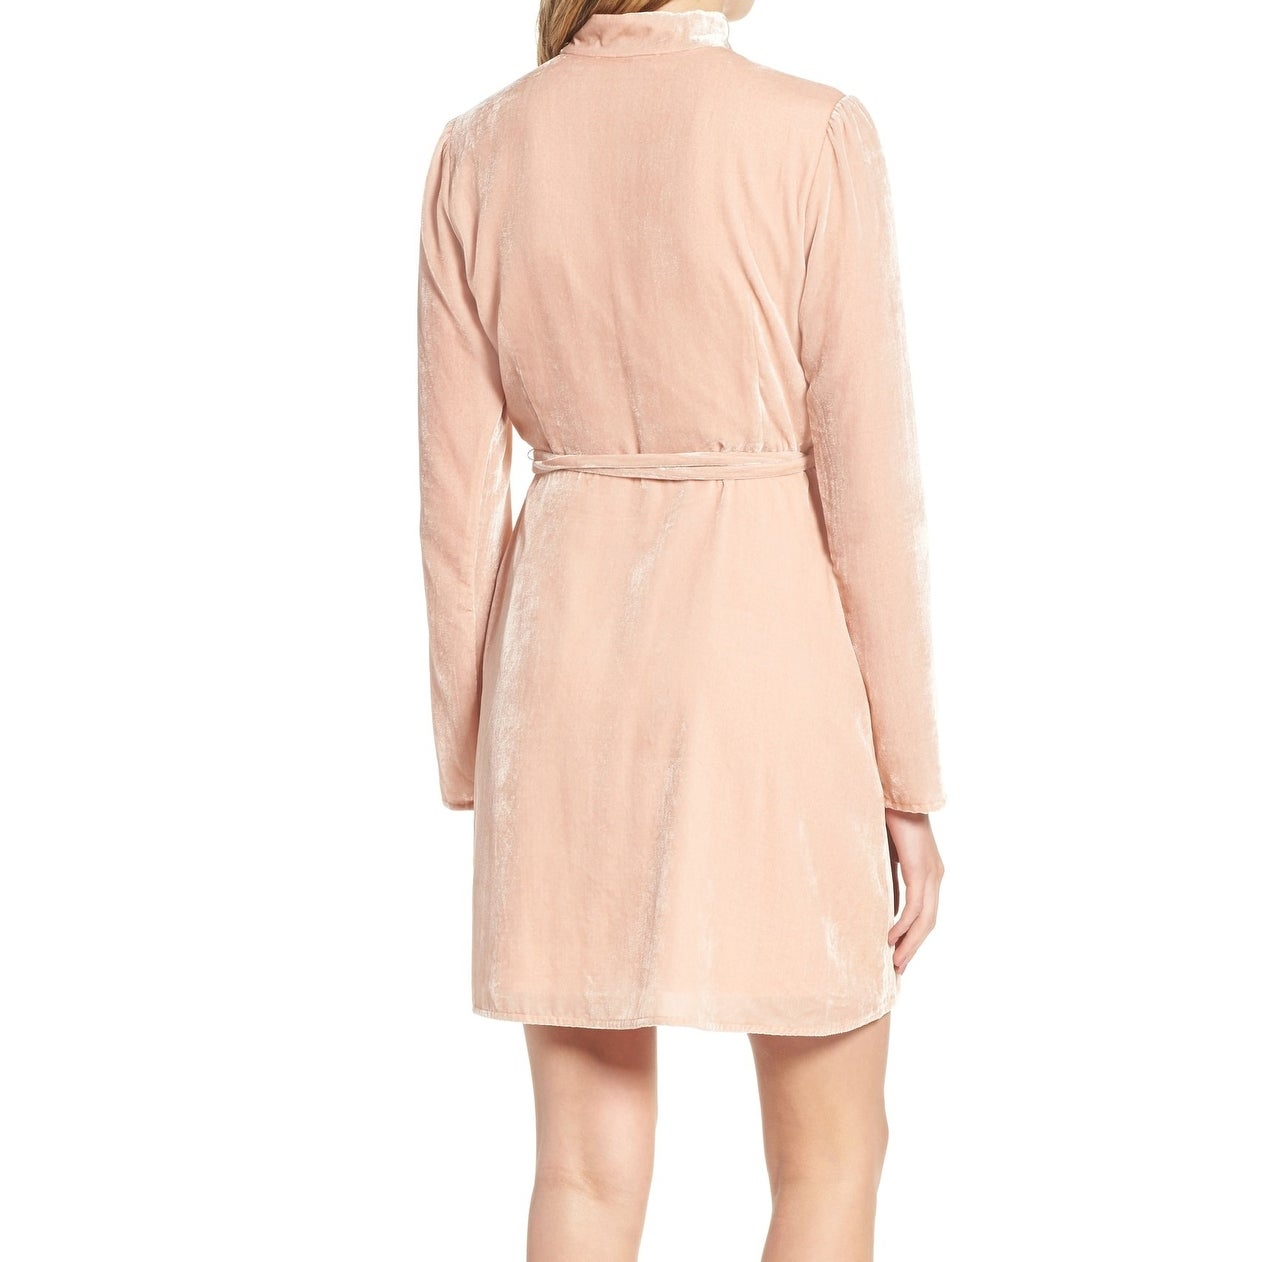 b680d14b423b Shop WAYF Blush Pink Womens Size XS Velvet Choker Solid Wrap Dress - Free  Shipping On Orders Over $45 - Overstock - 22410508